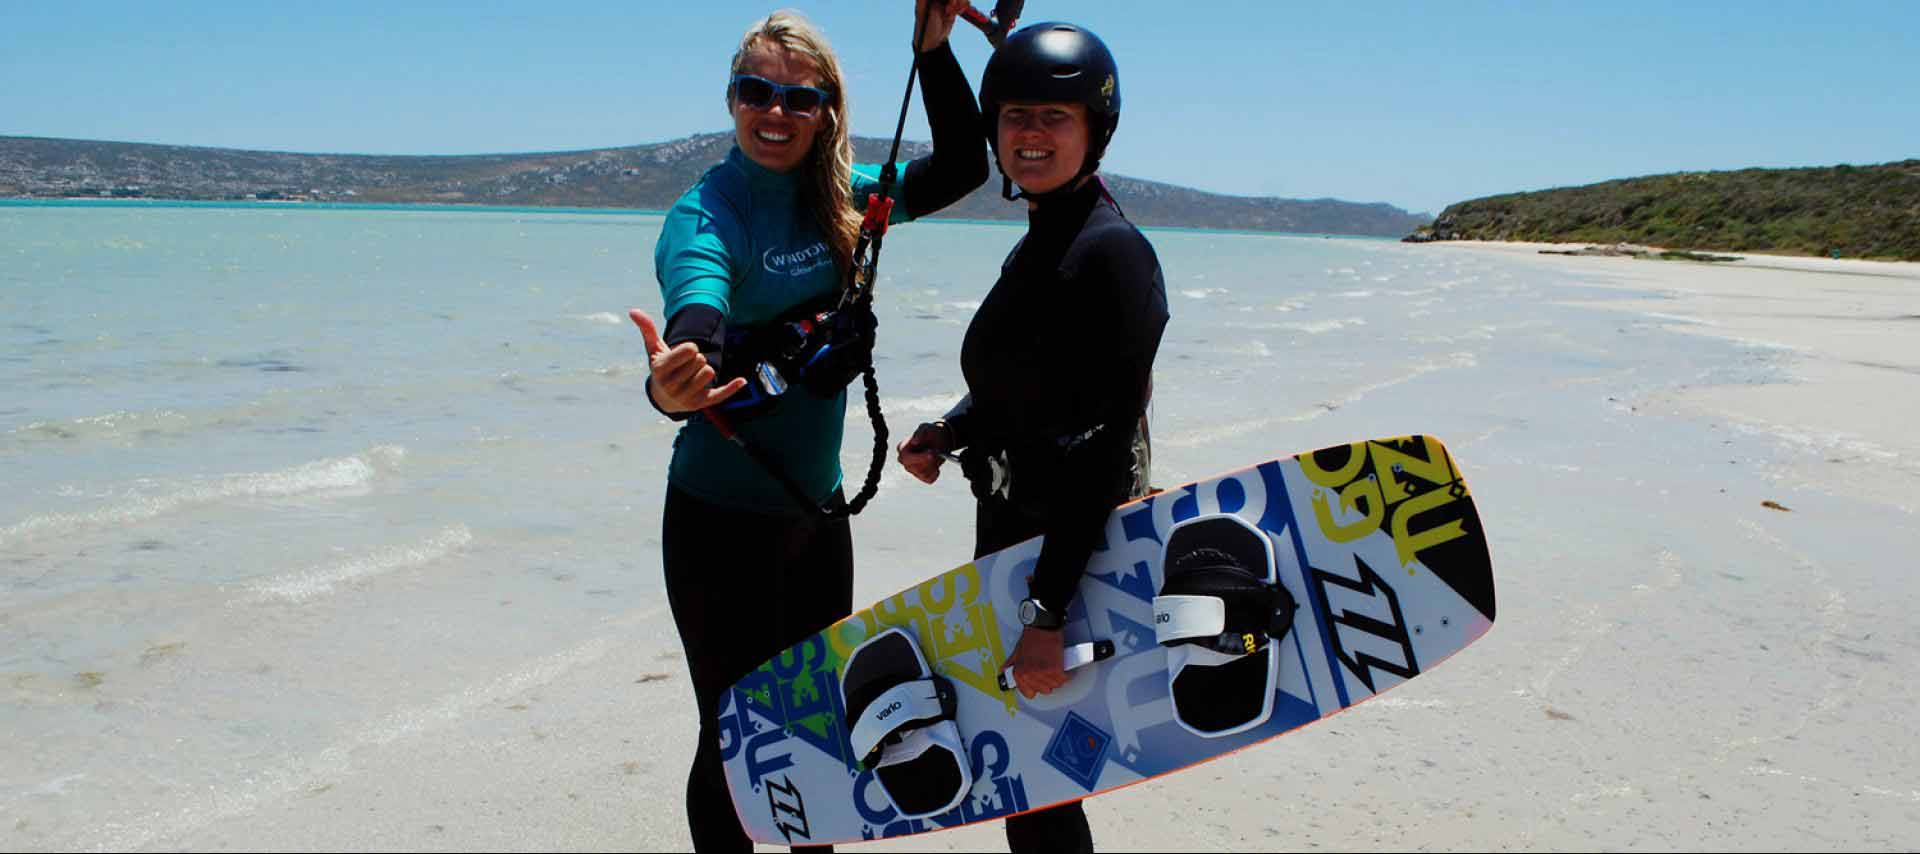 Kitesurf Courses| Kiteschool Windtown